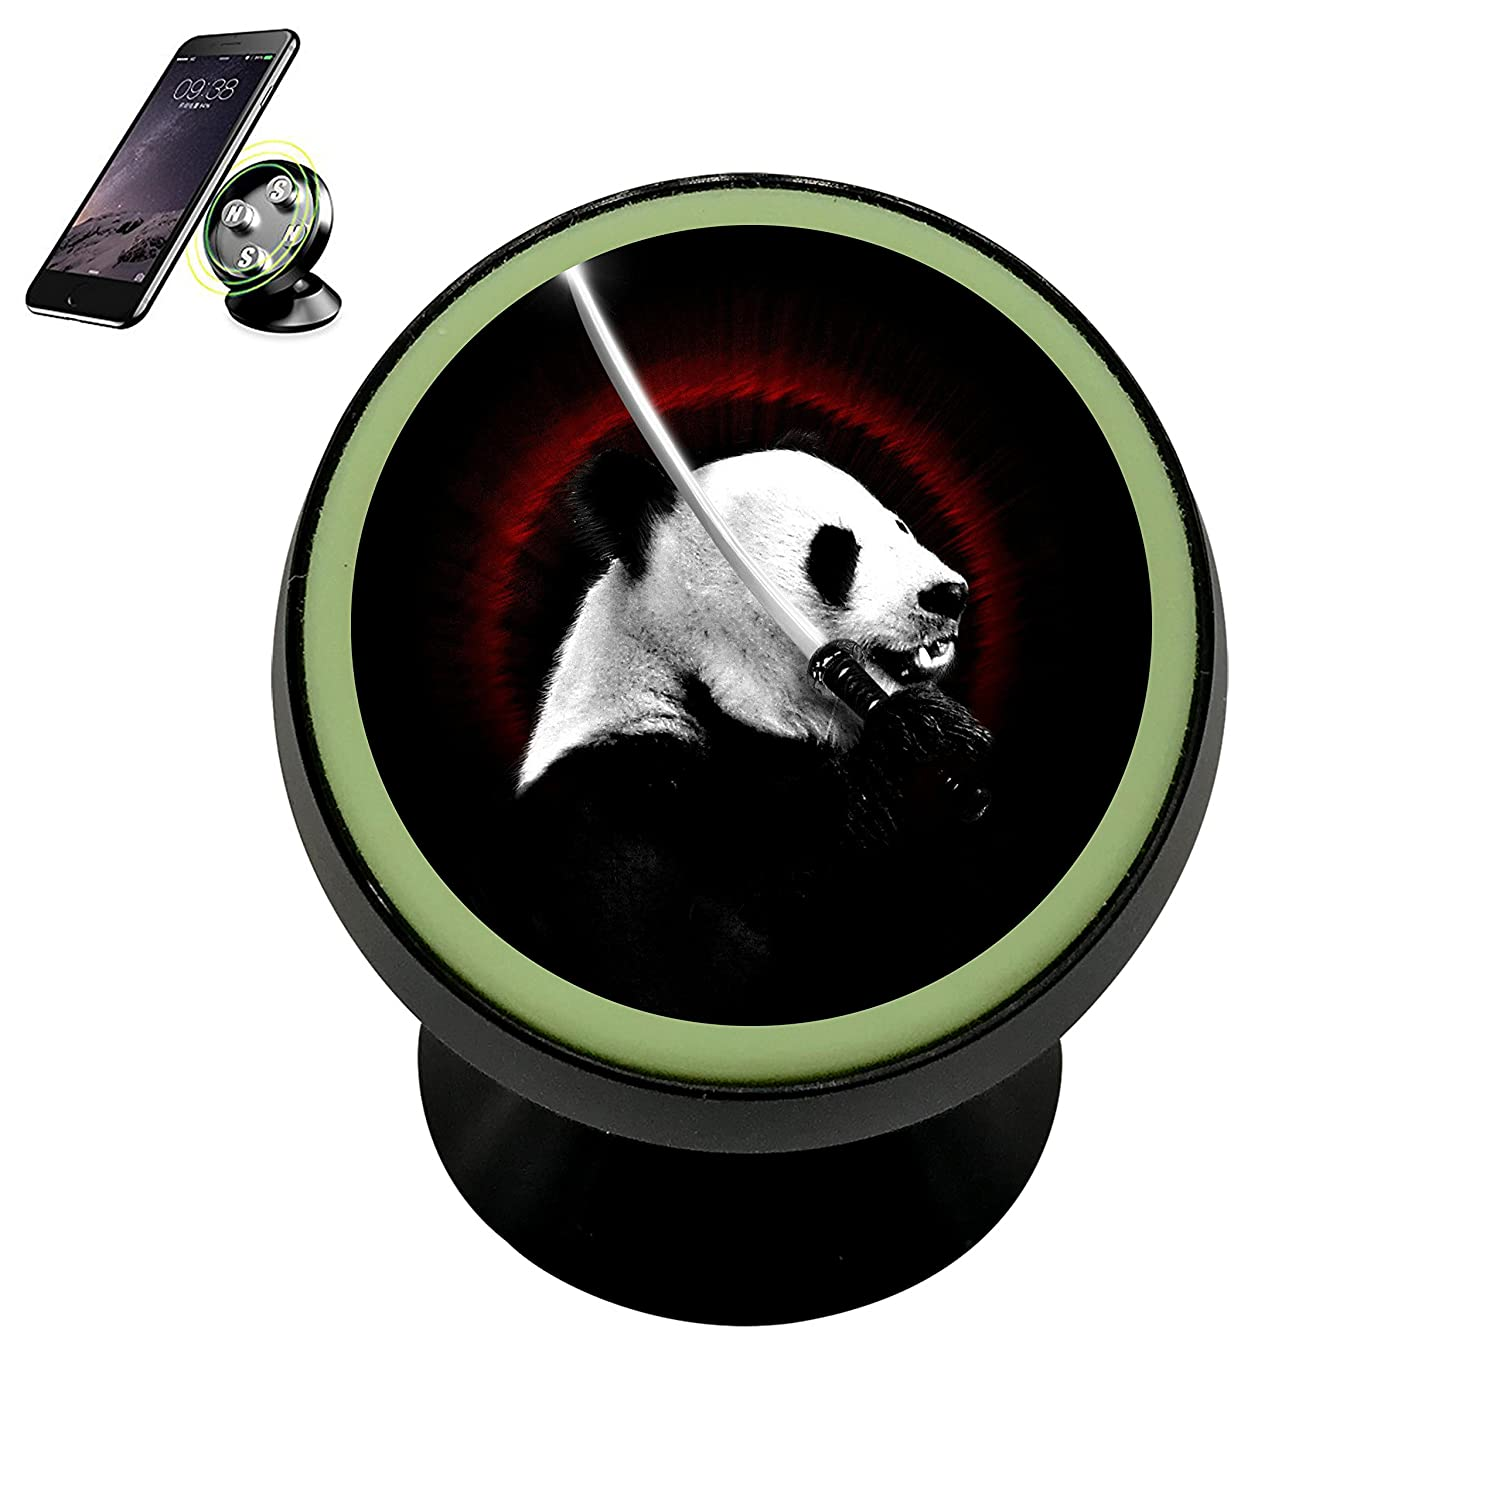 Amazon.com: HACol Ninja Panda Magnetic Phone Car Mount ...